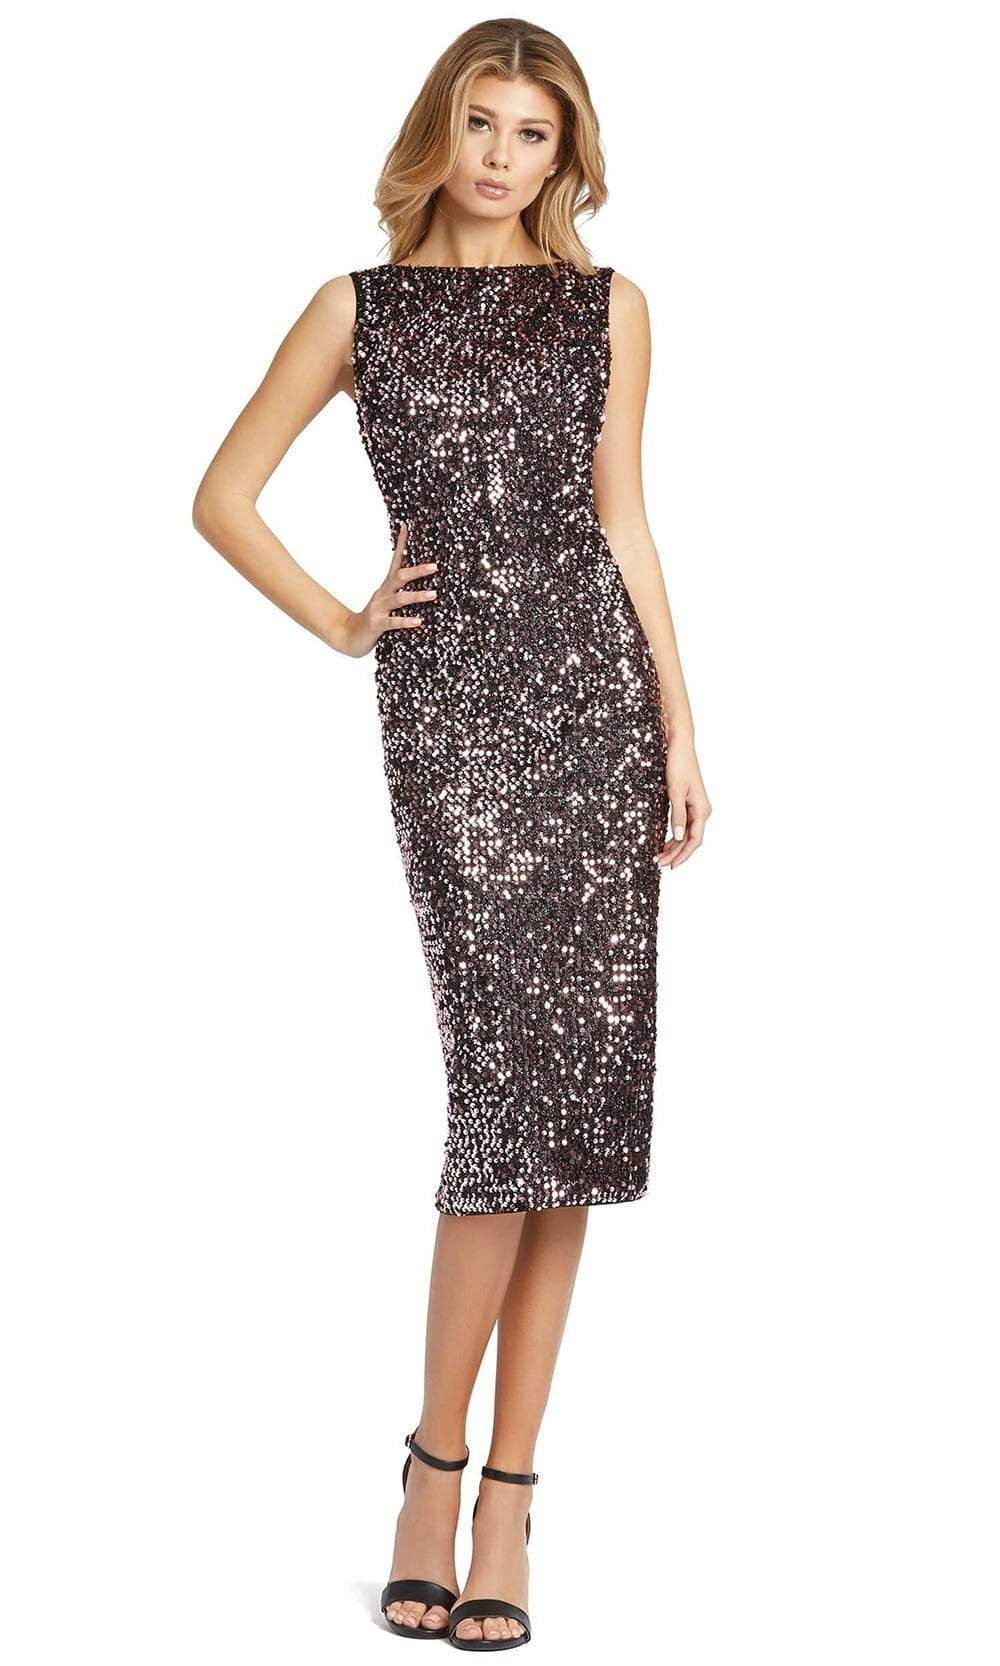 Ieena Duggal - 26438 High Bateau Neck Plunge Cowl Back Sequin Dress from Ieena Duggal